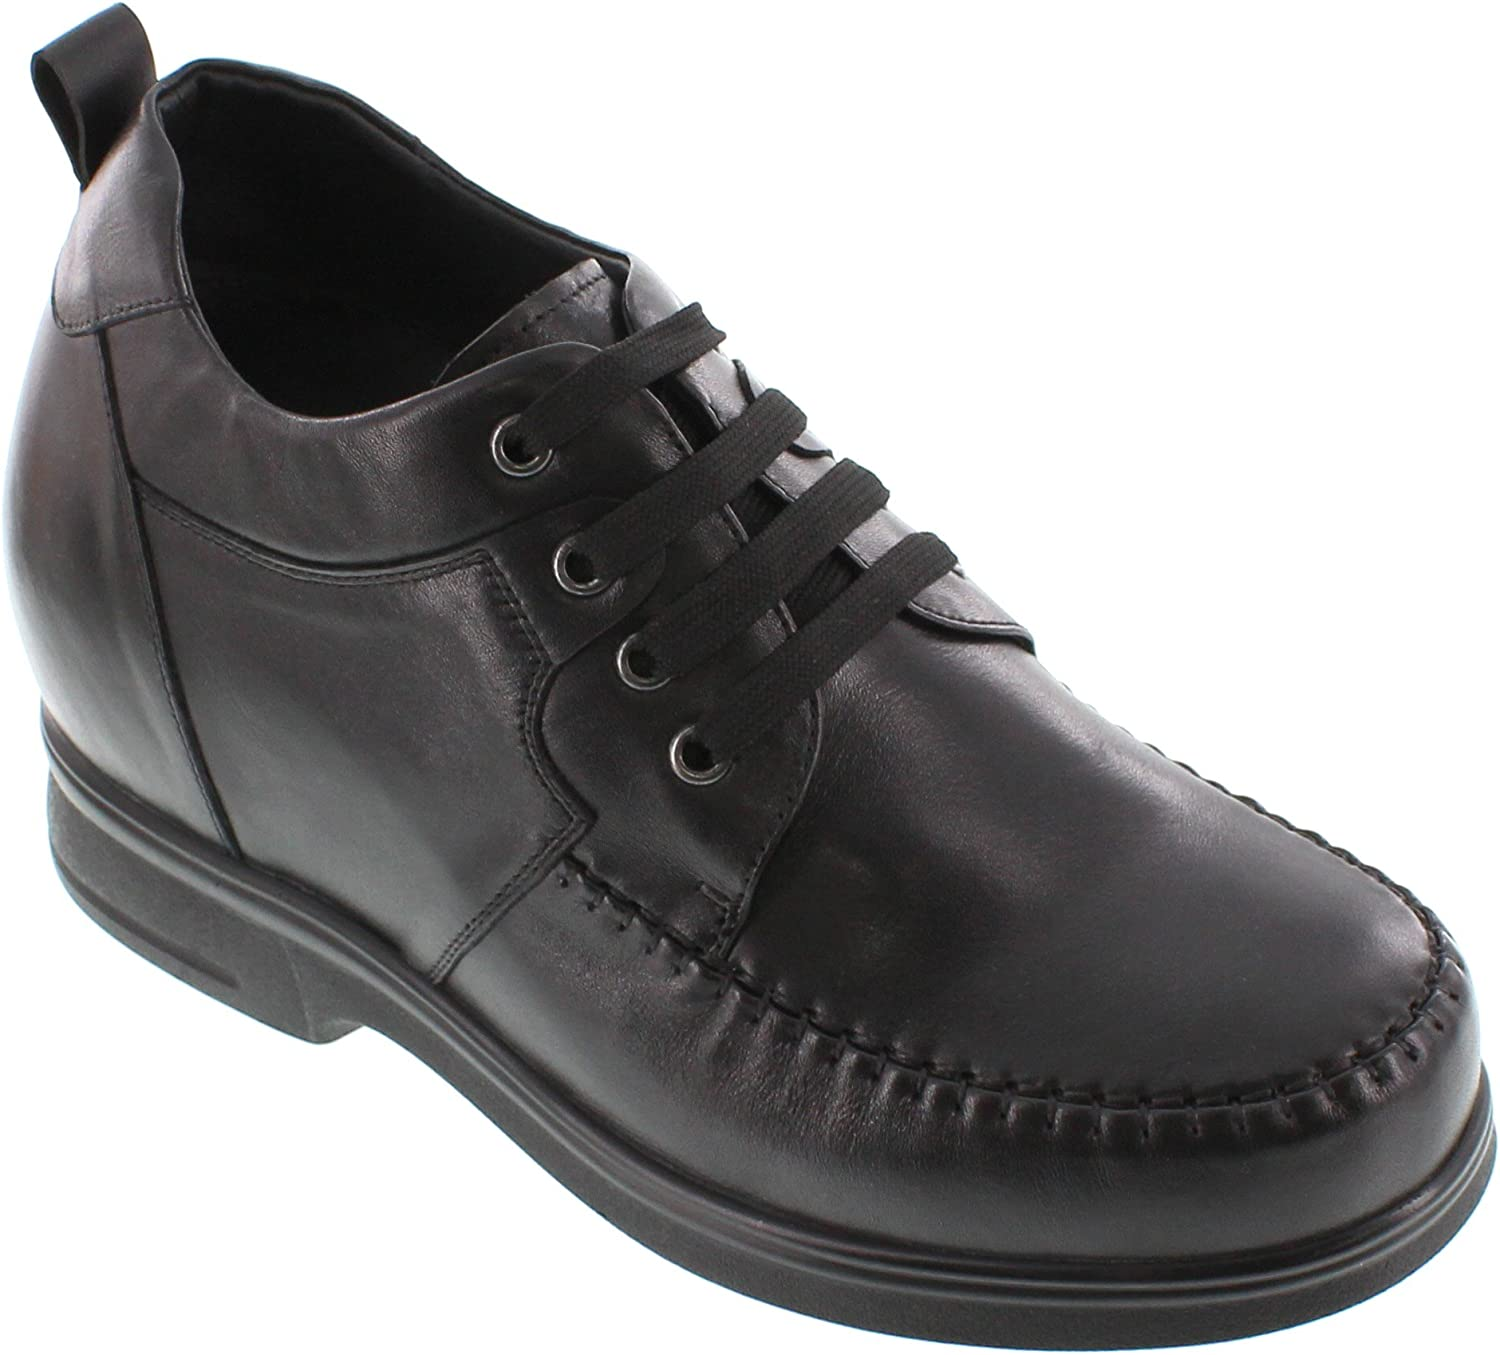 CALTO - G61303-4.4 Inches Taller - Size 9 D US - Height Increasing Elevator shoes (Black Leather Lace-up Boot)